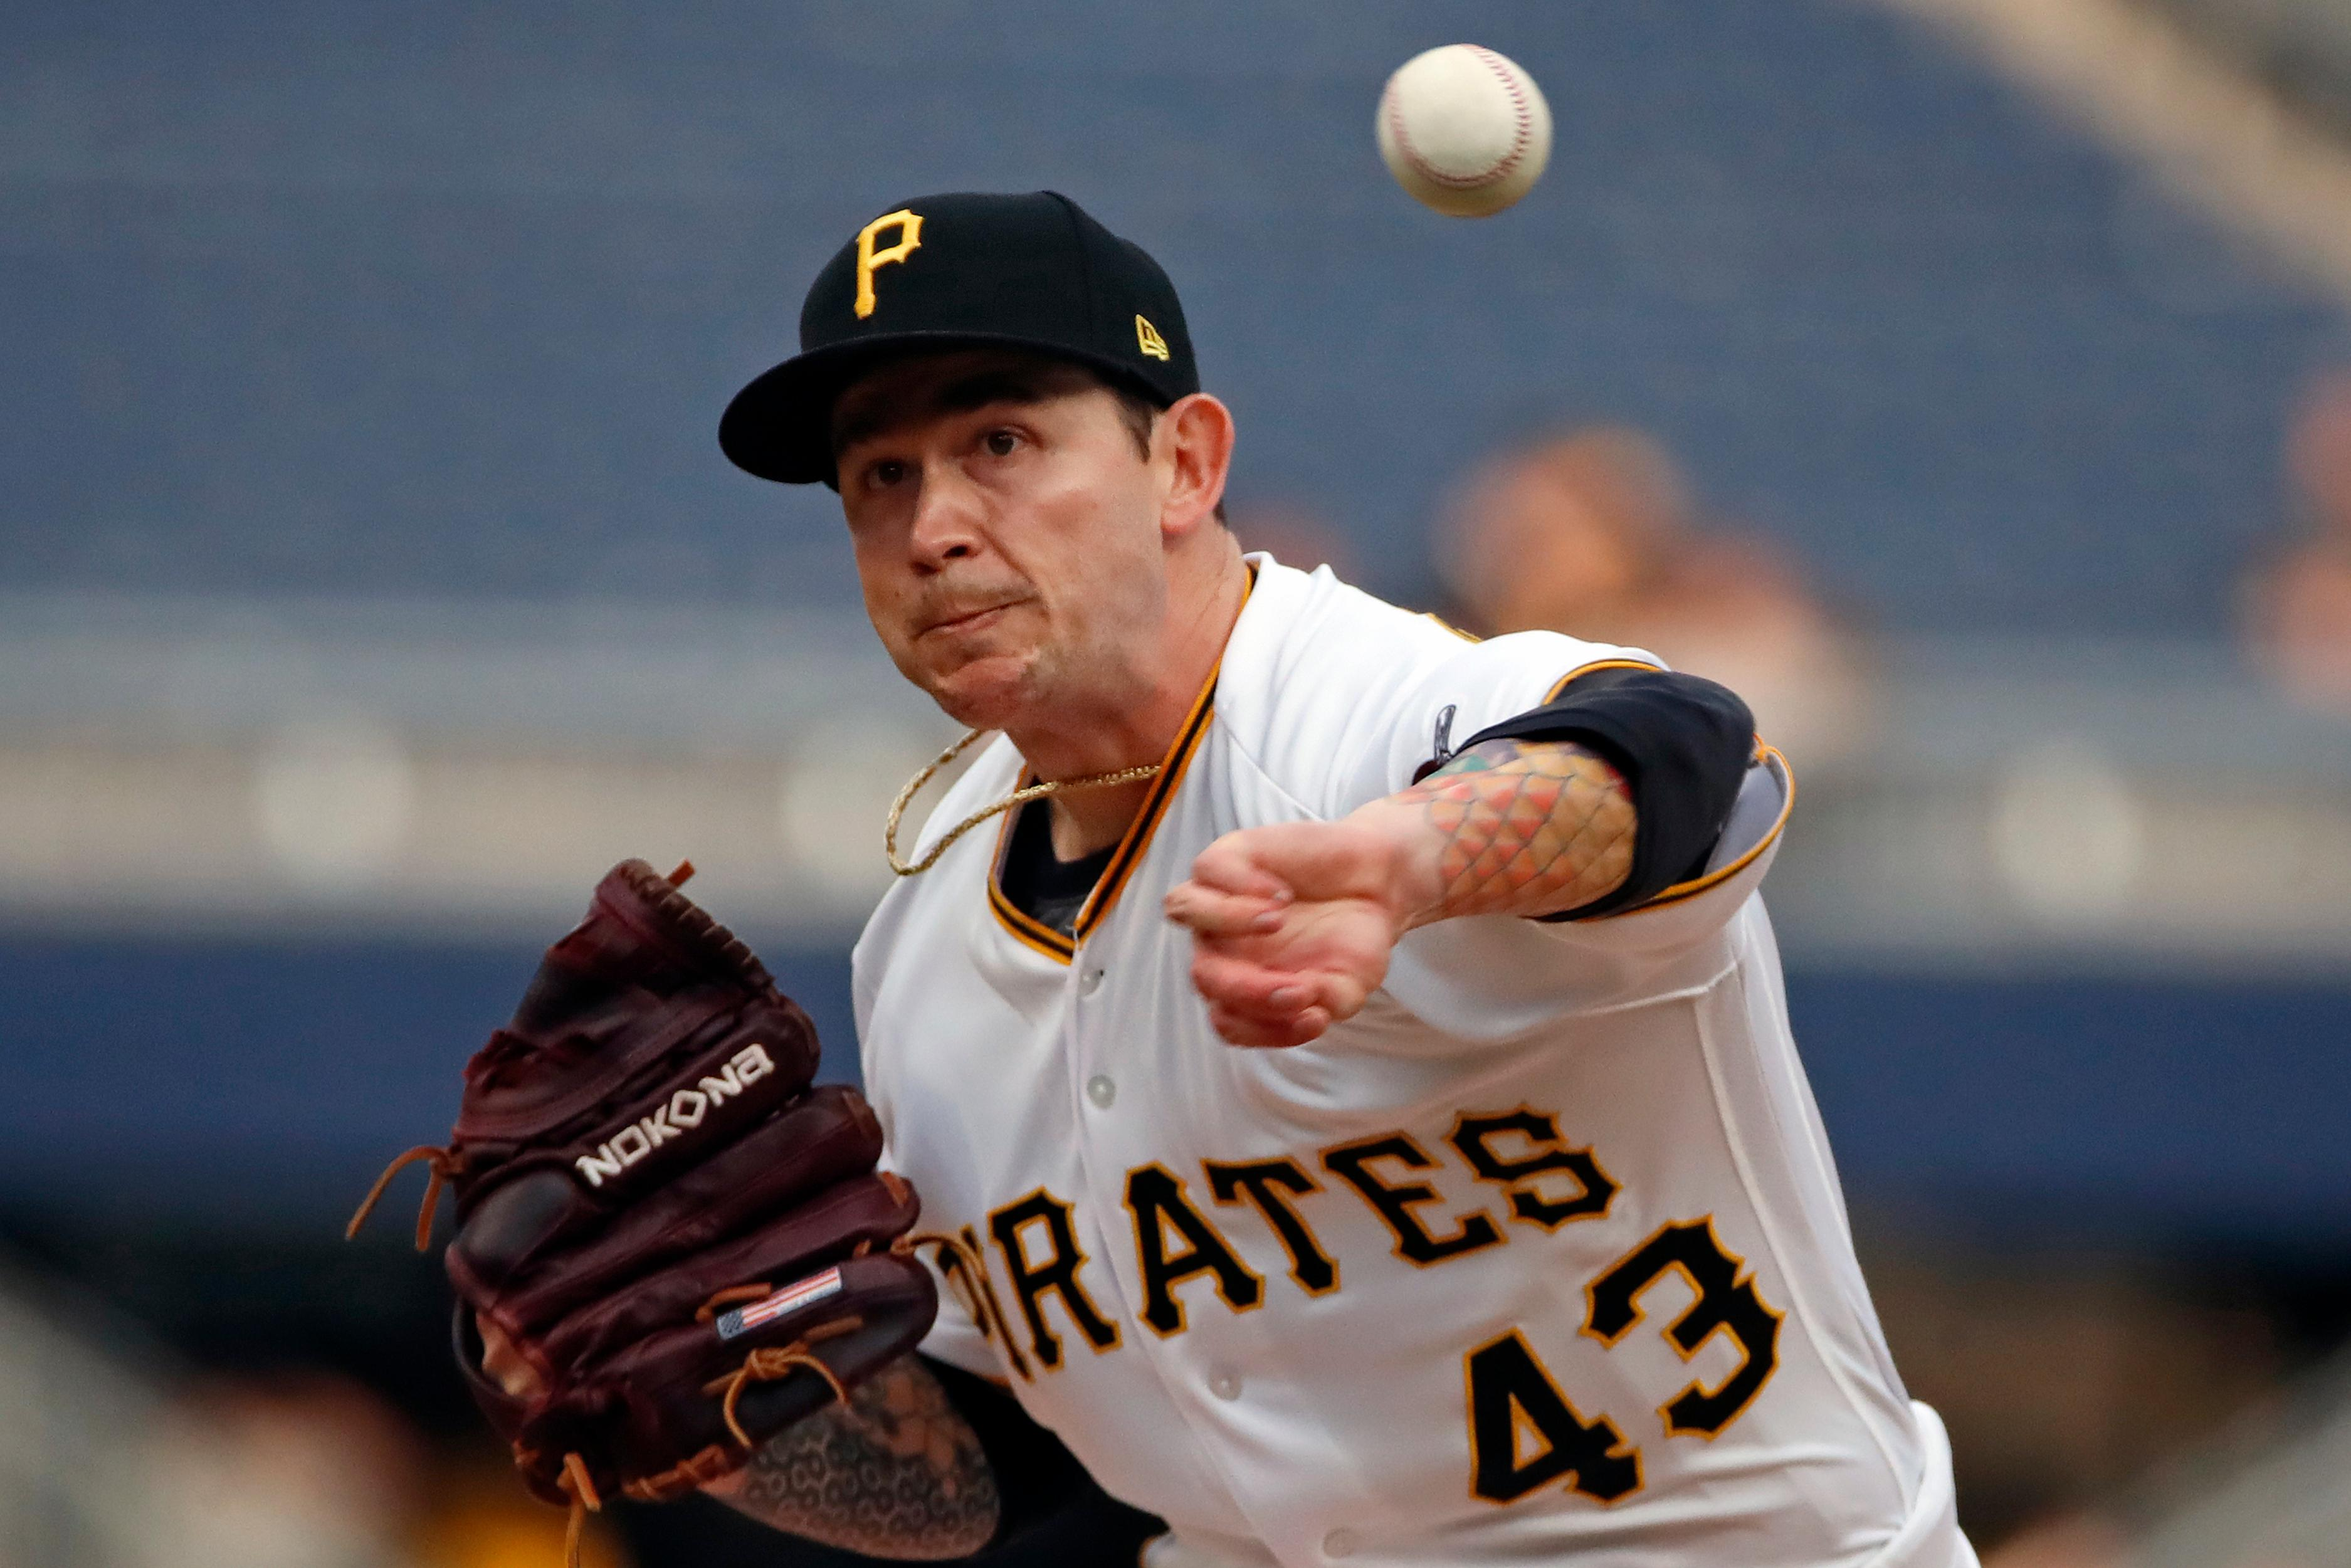 Pittsburgh Pirates starting pitcher Steven Brault delivers during the first inning of the team's baseball game against the Atlanta Braves in Pittsburgh, Tuesday, June 4, 2019. (AP Photo/Gene J. Puskar)